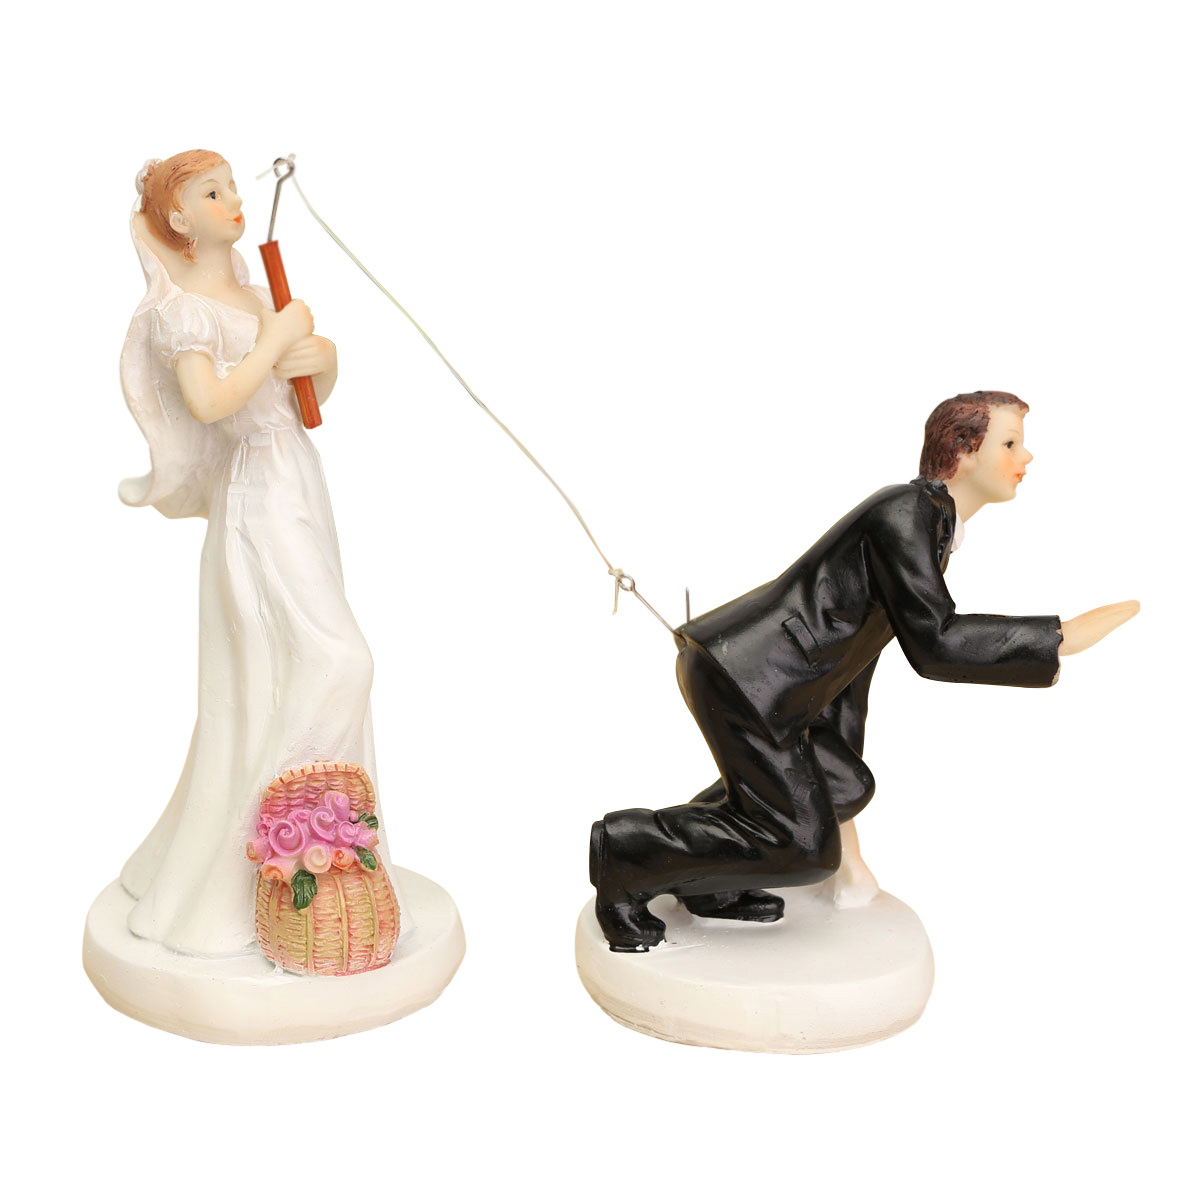 FUNNY ROMANTIC WEDDING CAKE TOPPER FIGURE BRIDE GROOM ...